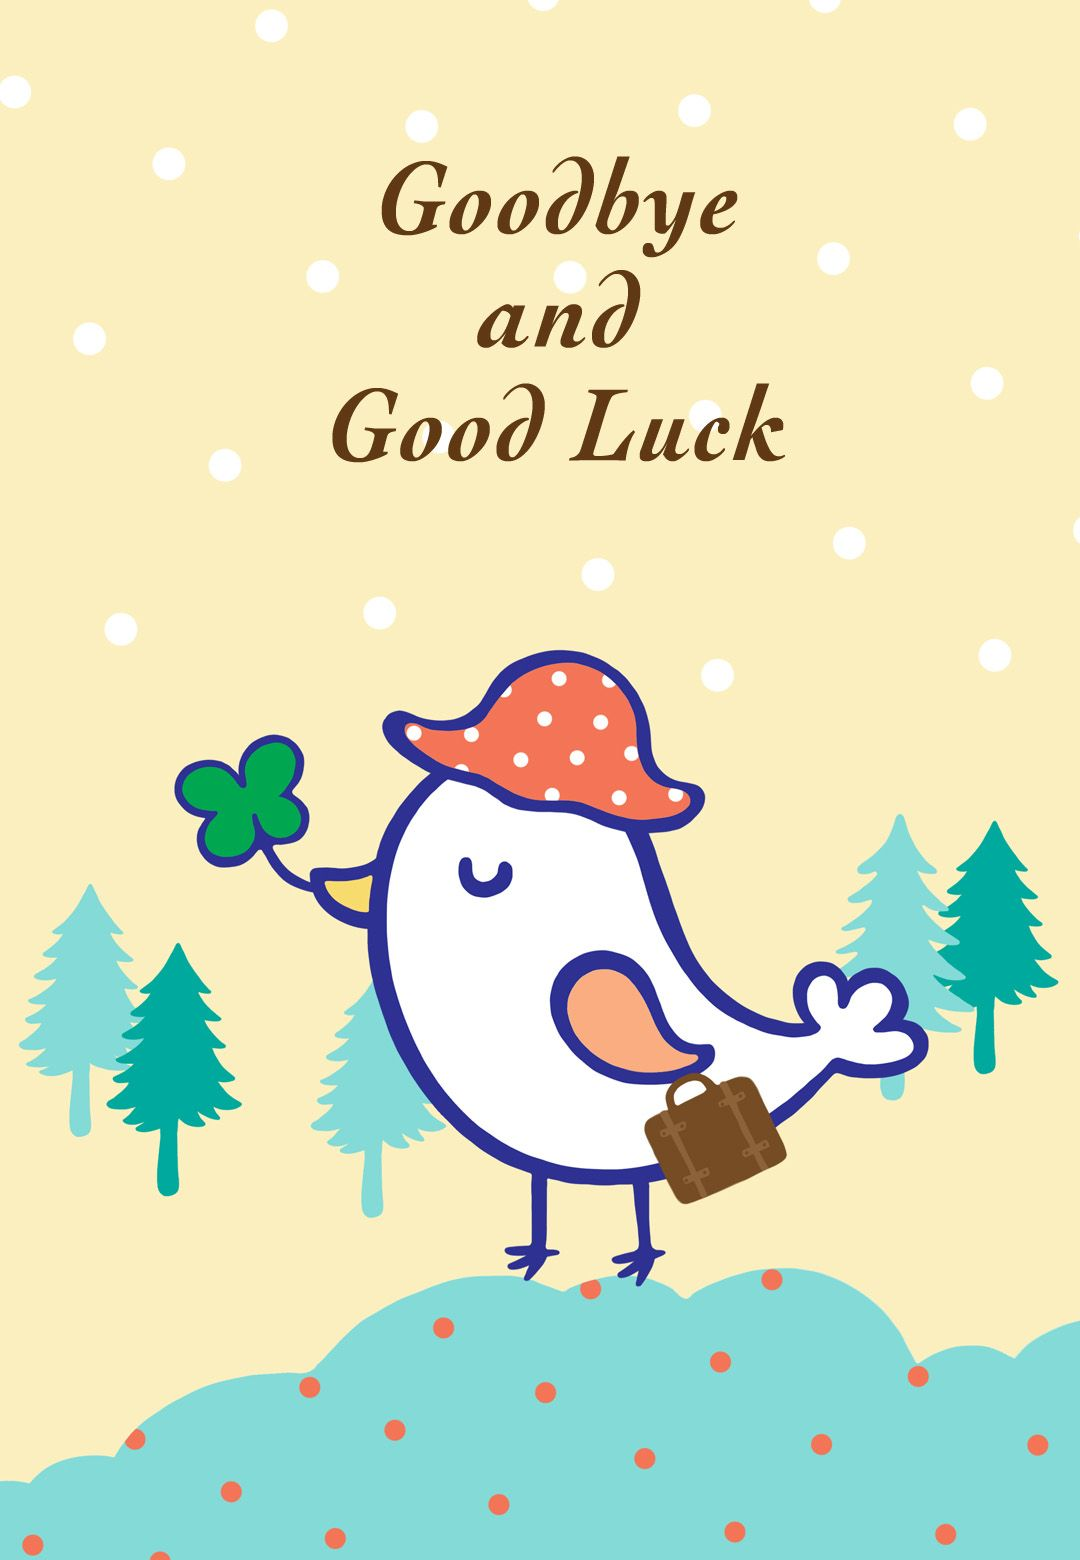 Free Printable Goodbye And Good Luck Greeting Card | Littlestar ...